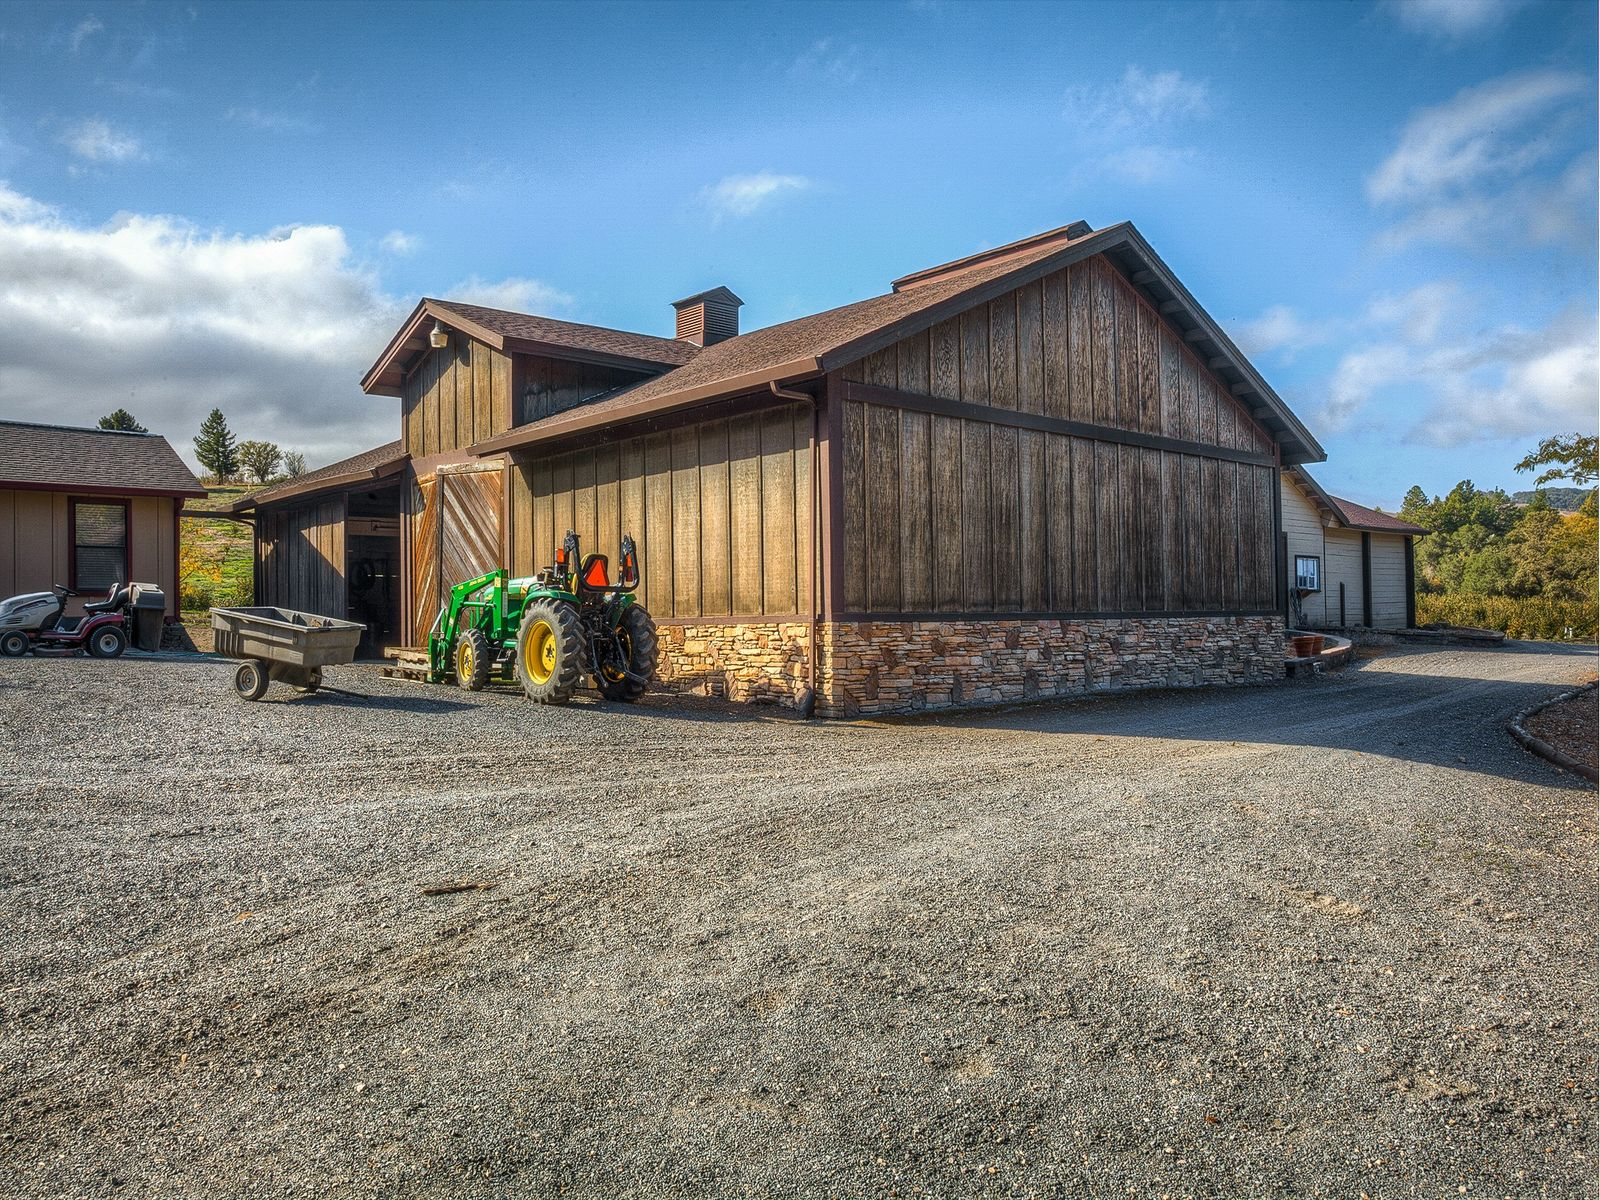 Barn, property has a 5000 case winery permit